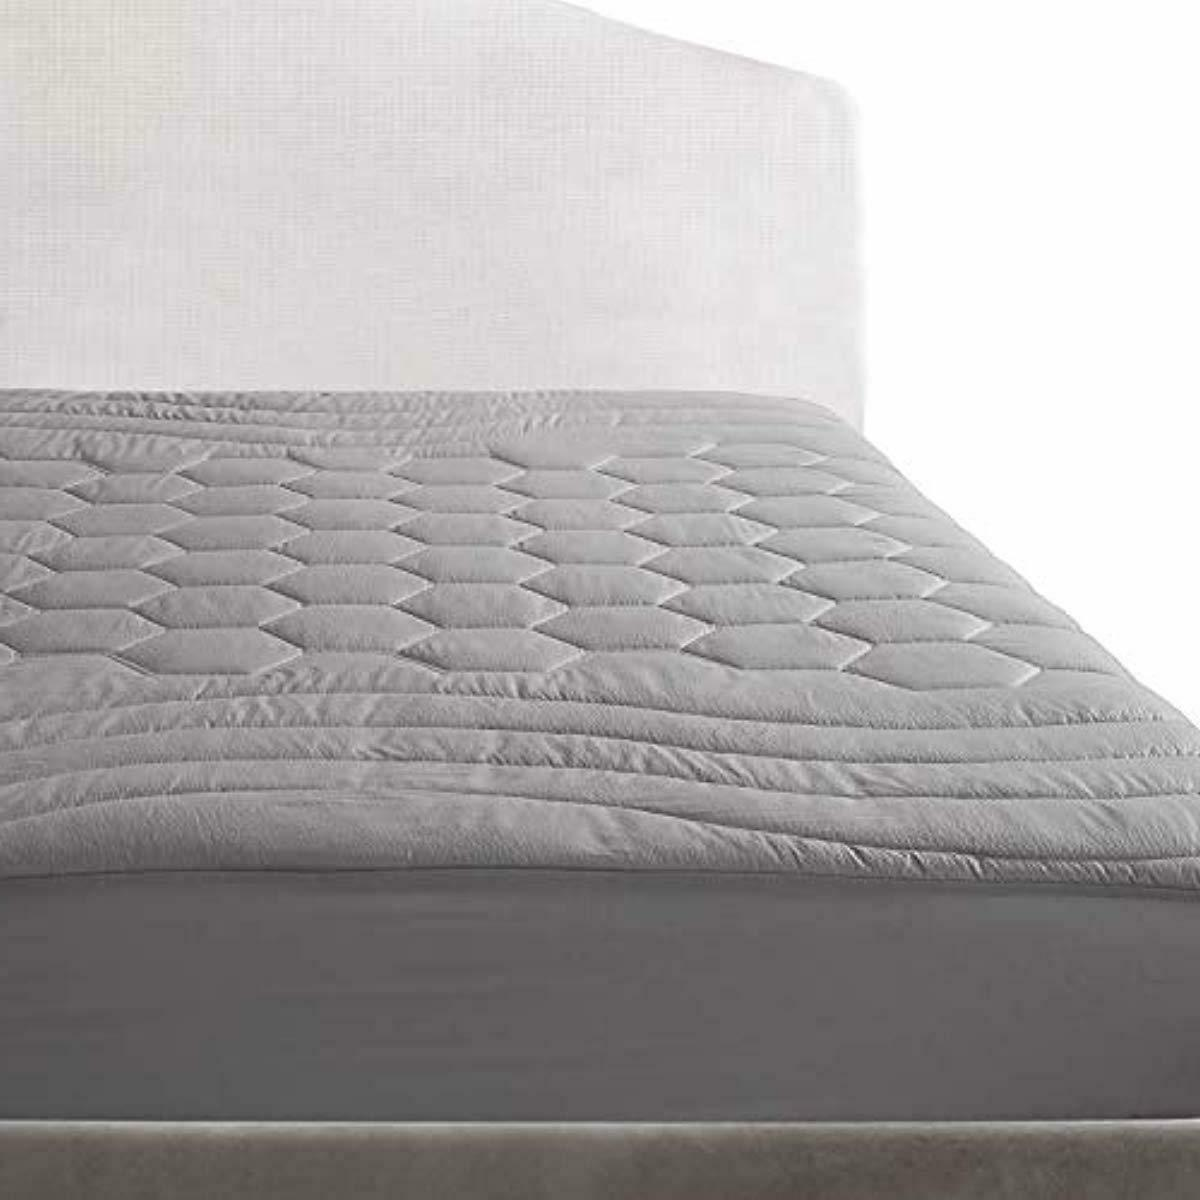 Bedsure Quilted Mattress Pad Twin XL/Twin Extra Long Size Gr